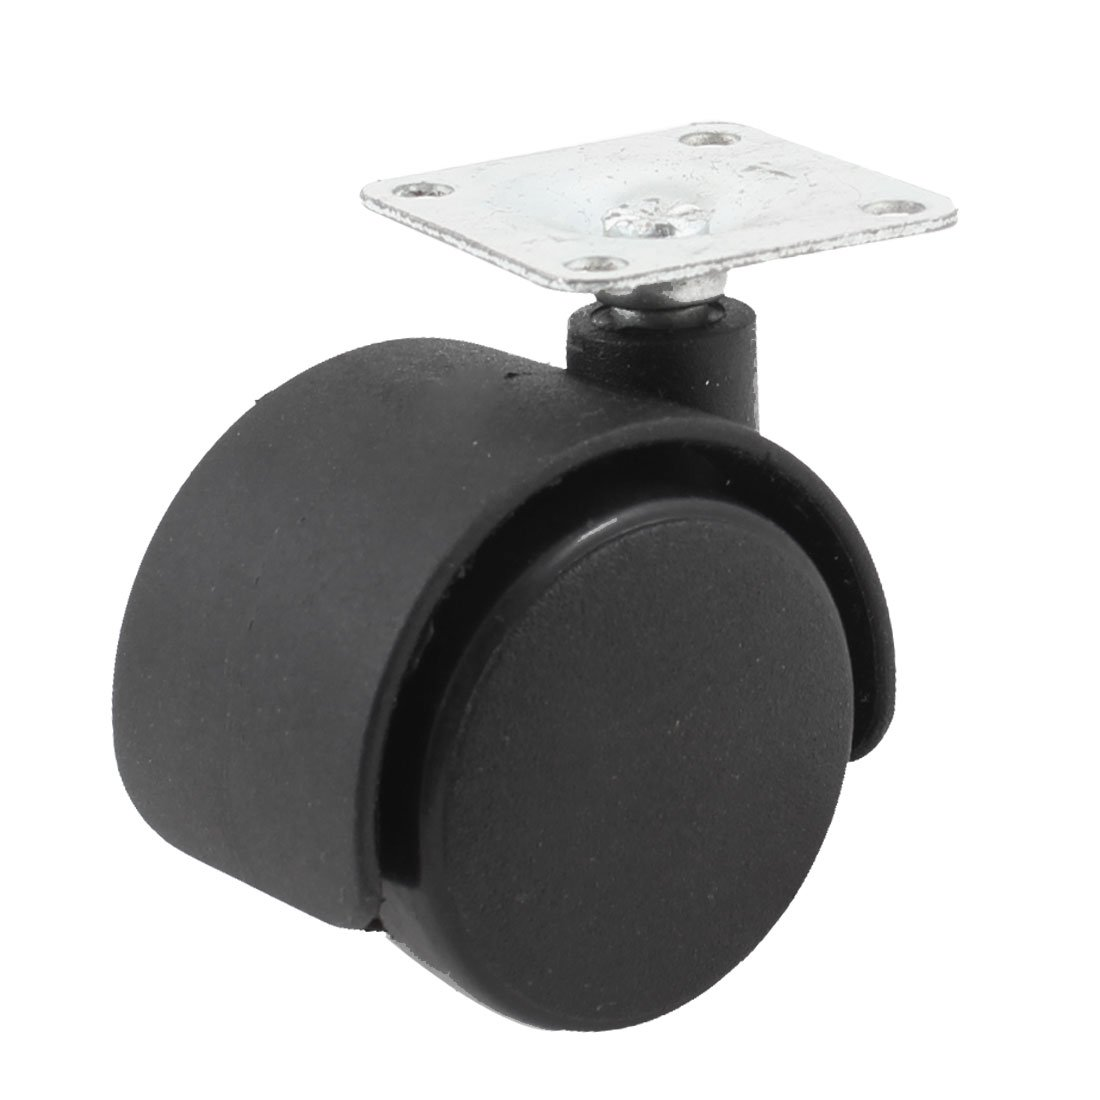 Гаджет  IMC Hot 33mm Metal Mounted Plate 38mm Plastic Dual Wheel Rotatable Caster None Мебель